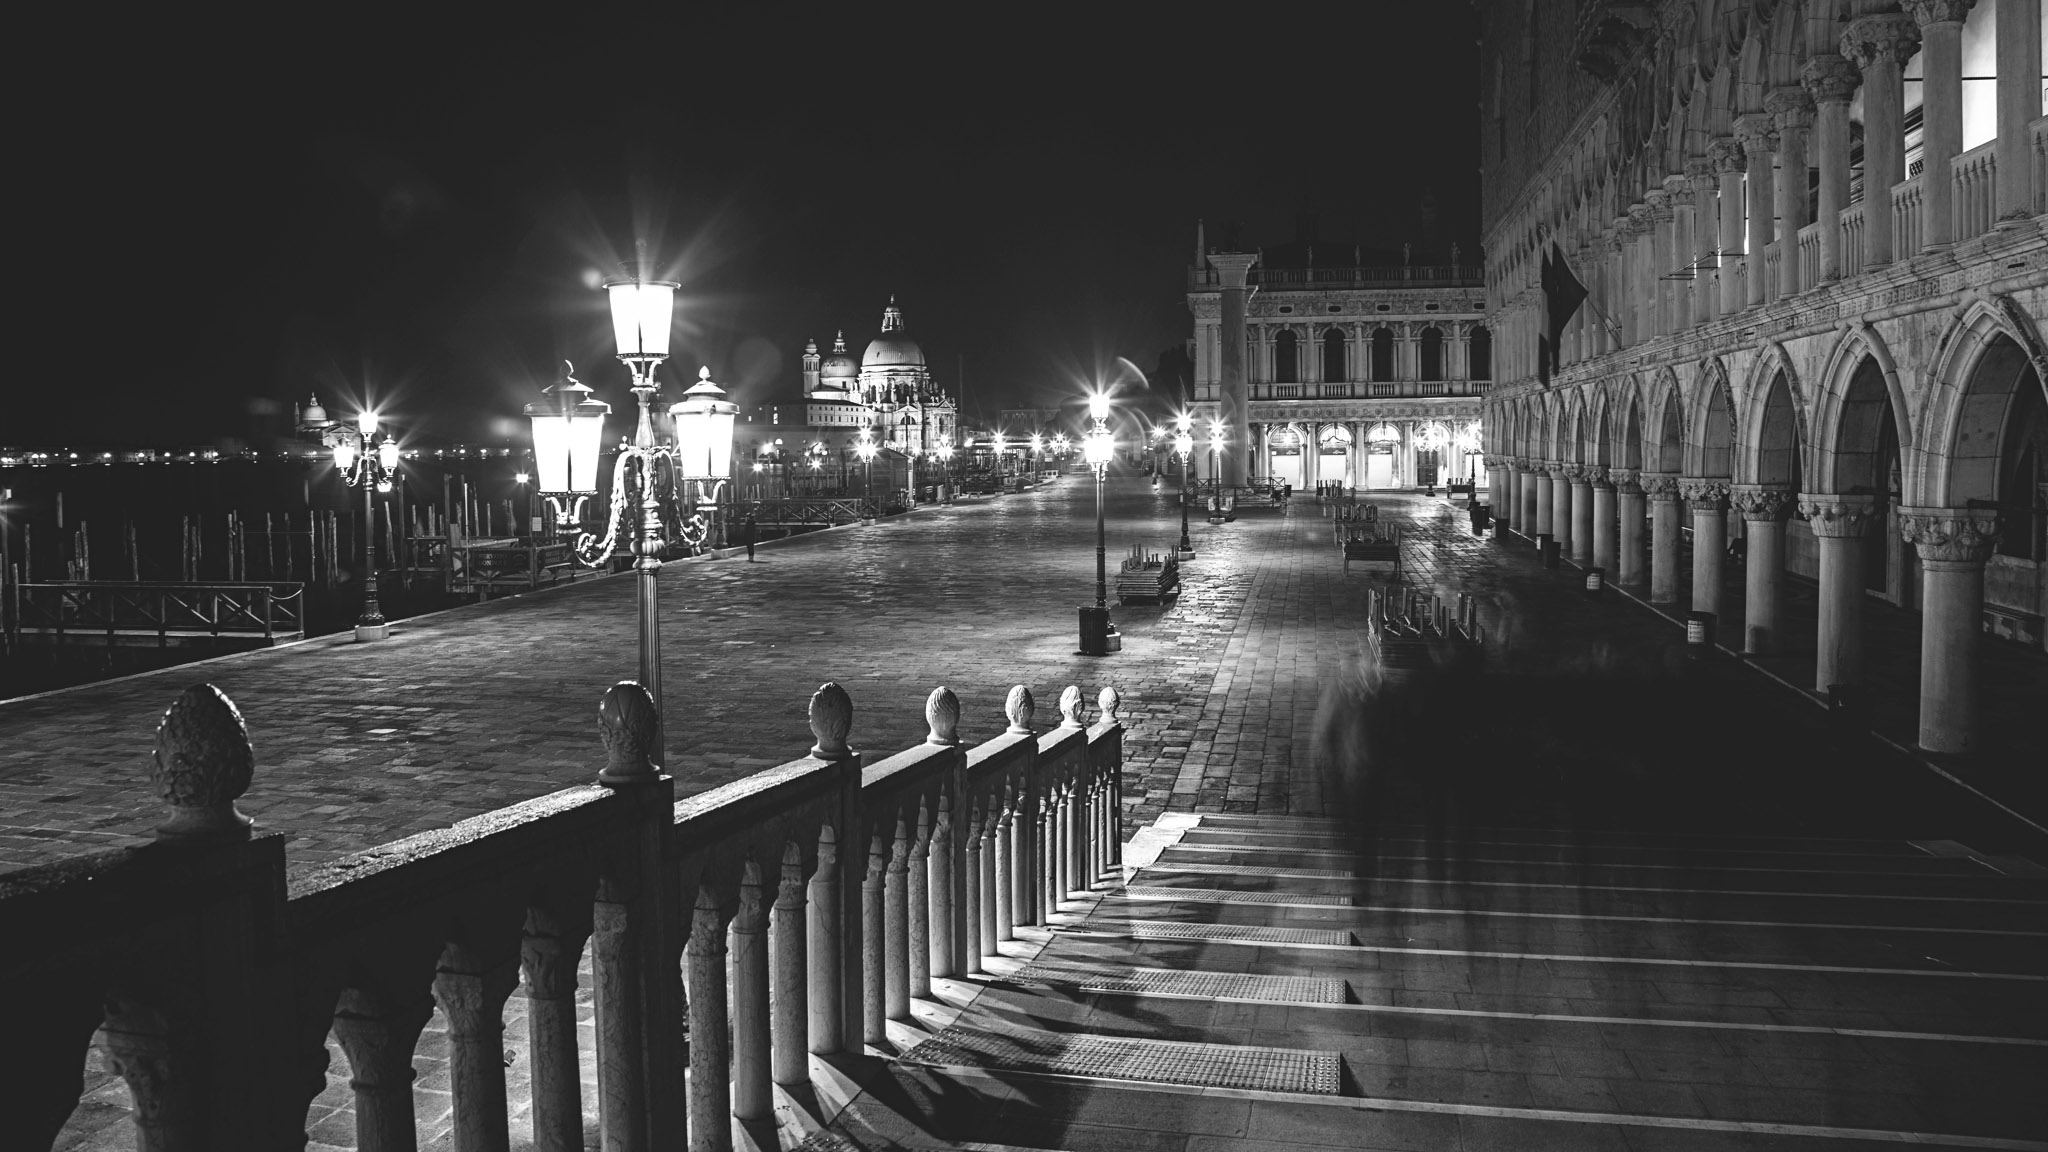 Outside the Doge's Palace - 6d - 24-105 f4 @ 24mm/f7.1/10 secs/iso 125